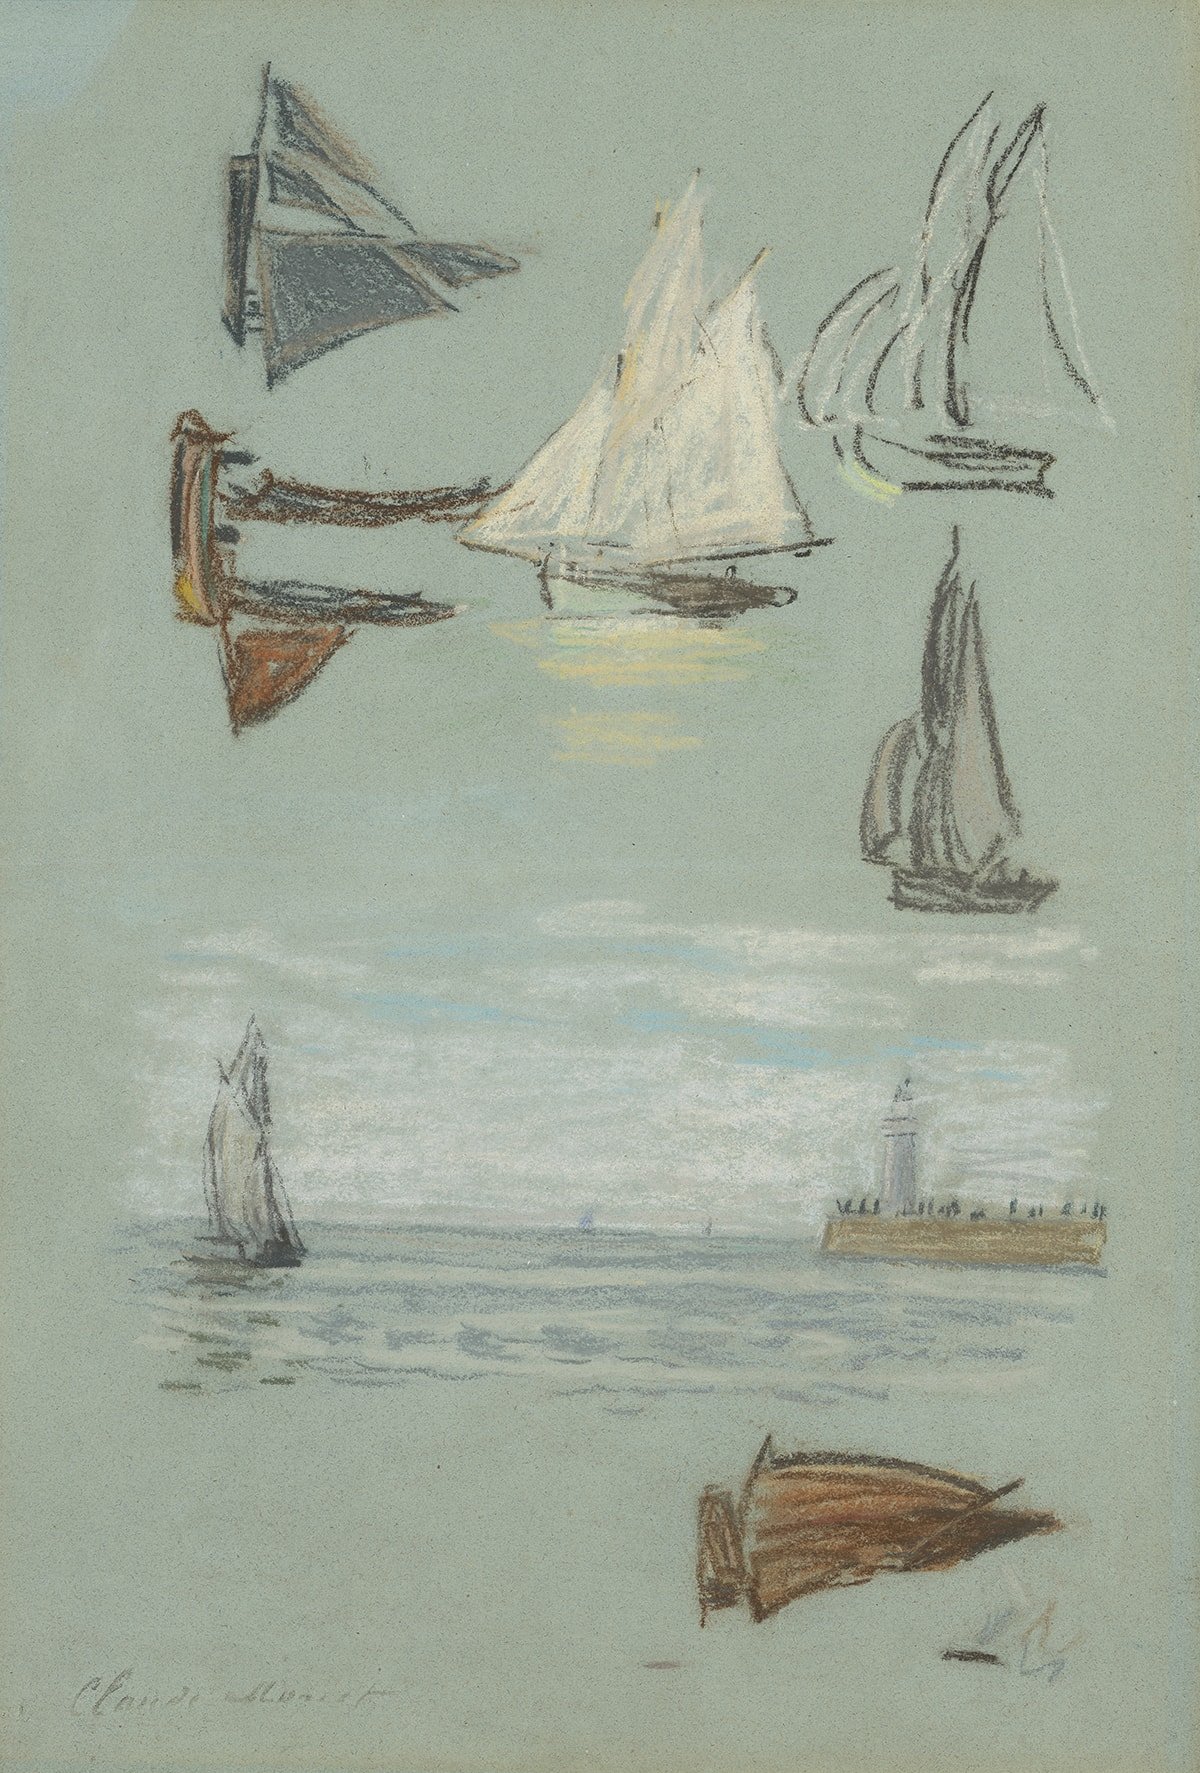 Honfleur, voiliers et phare (Honfleur, Sailboats and Lighthouse), Claude Monet, 18 ¼ x 12 ½ inches, pastel on blue paper. A vertical rectangular sketch of different sailing vessels and a seascape. The top half of the sketch shows five sailboats, sketched independently and oriented in two directions. At left, two boats can be seen on their sides as if drawn when the paper was turned horizontally. The one at top is gray and has broad sails. Below is a brown boat with two of its three sails lowered. At center is a larger boat with full white sails. At right top is a vessel in outlined gray and white. Below it is another boat in gray and pink. The lower half of the sketch shows a scene with a gray sailboat at left and a jetty and lighthouse across a body of water with a white cloud filled sky at right. Bottom right holds a brown boat again on its side. The individual sketches reveal the artist's hand with loose, quick strokes of pastel. The artist's signature is seen at bottom left.